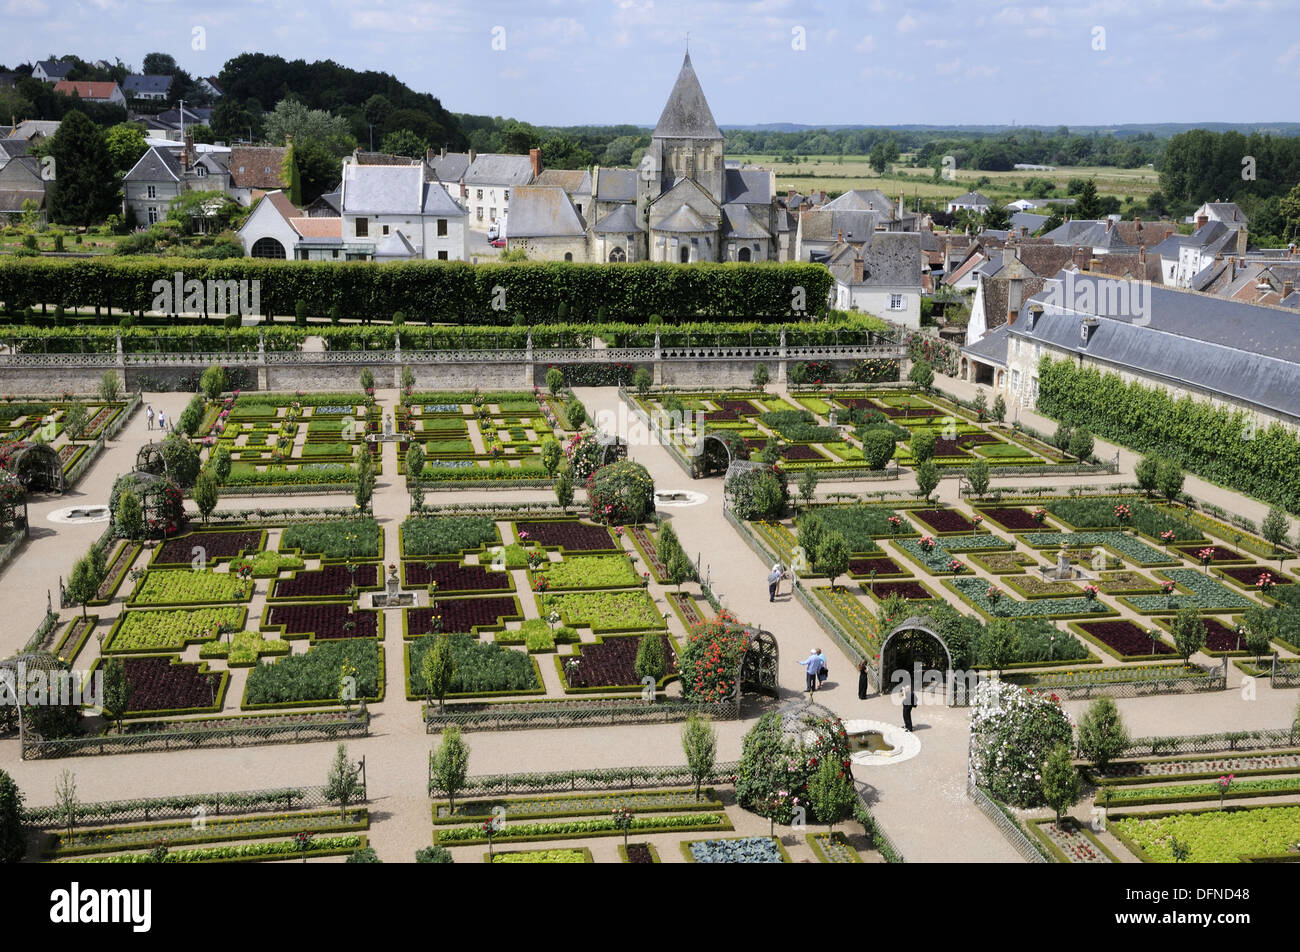 France Villandry 37 Decorative Vegetable Garden In Castle Gardens View From The Top Of Keep